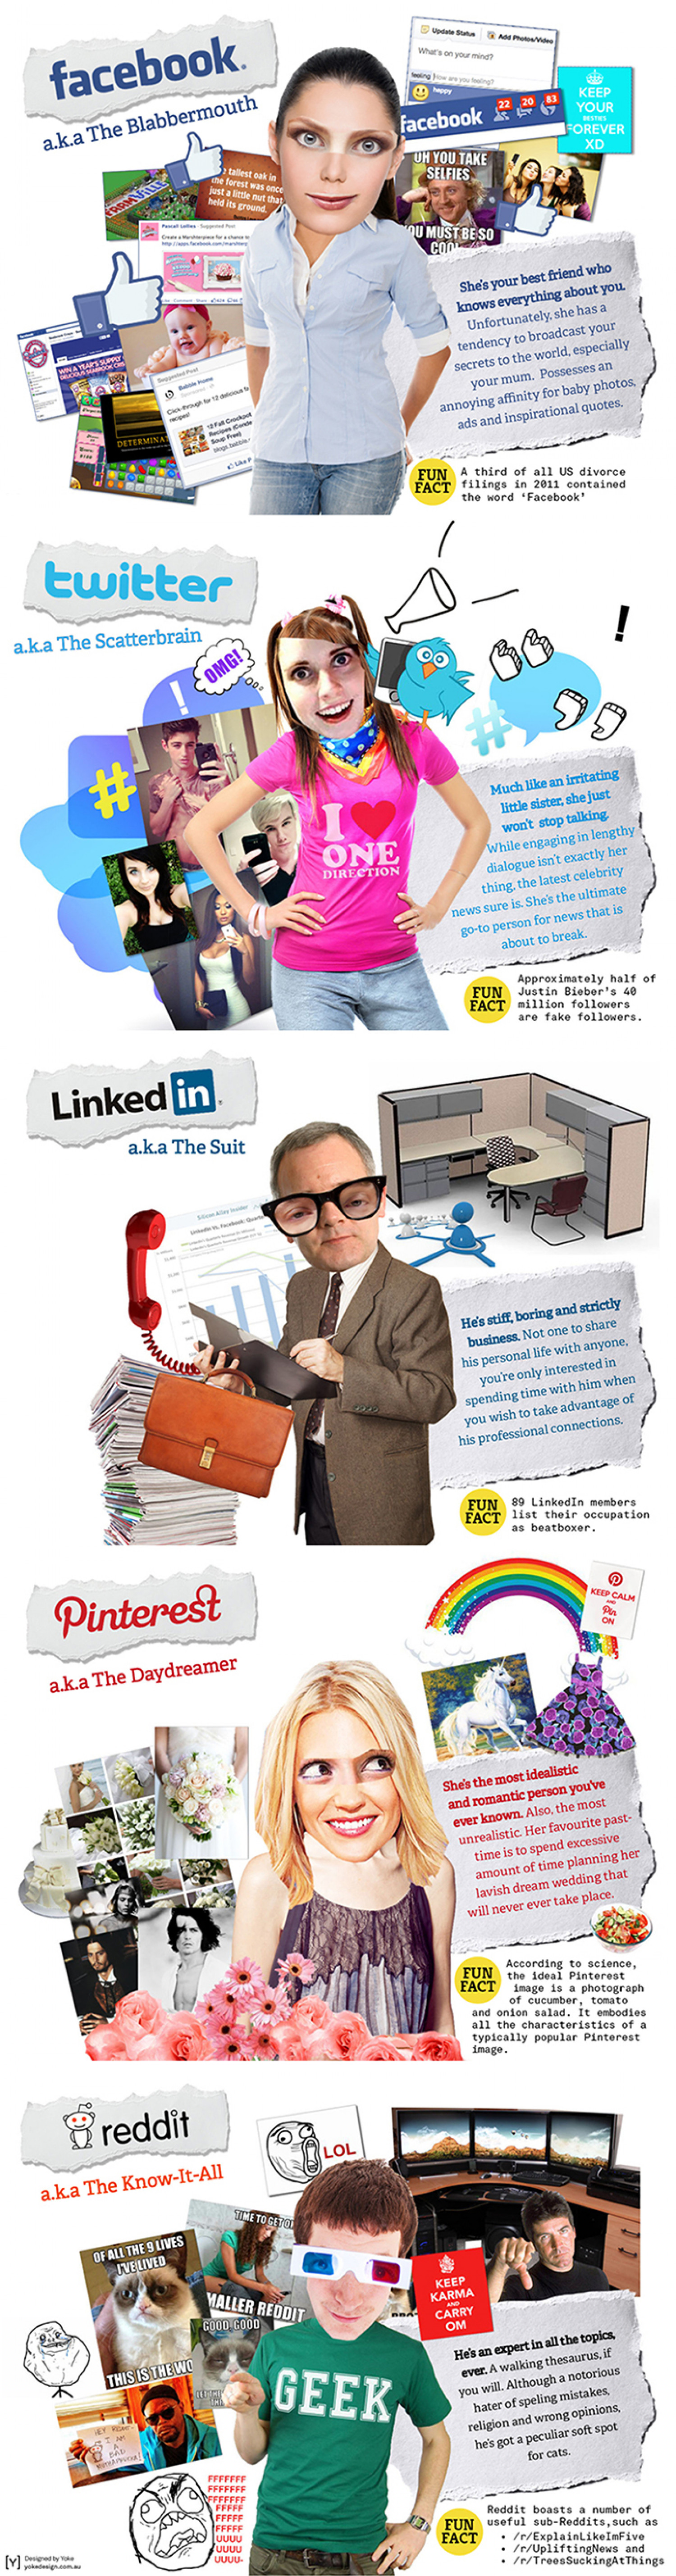 Social media platforms as real people Infographic